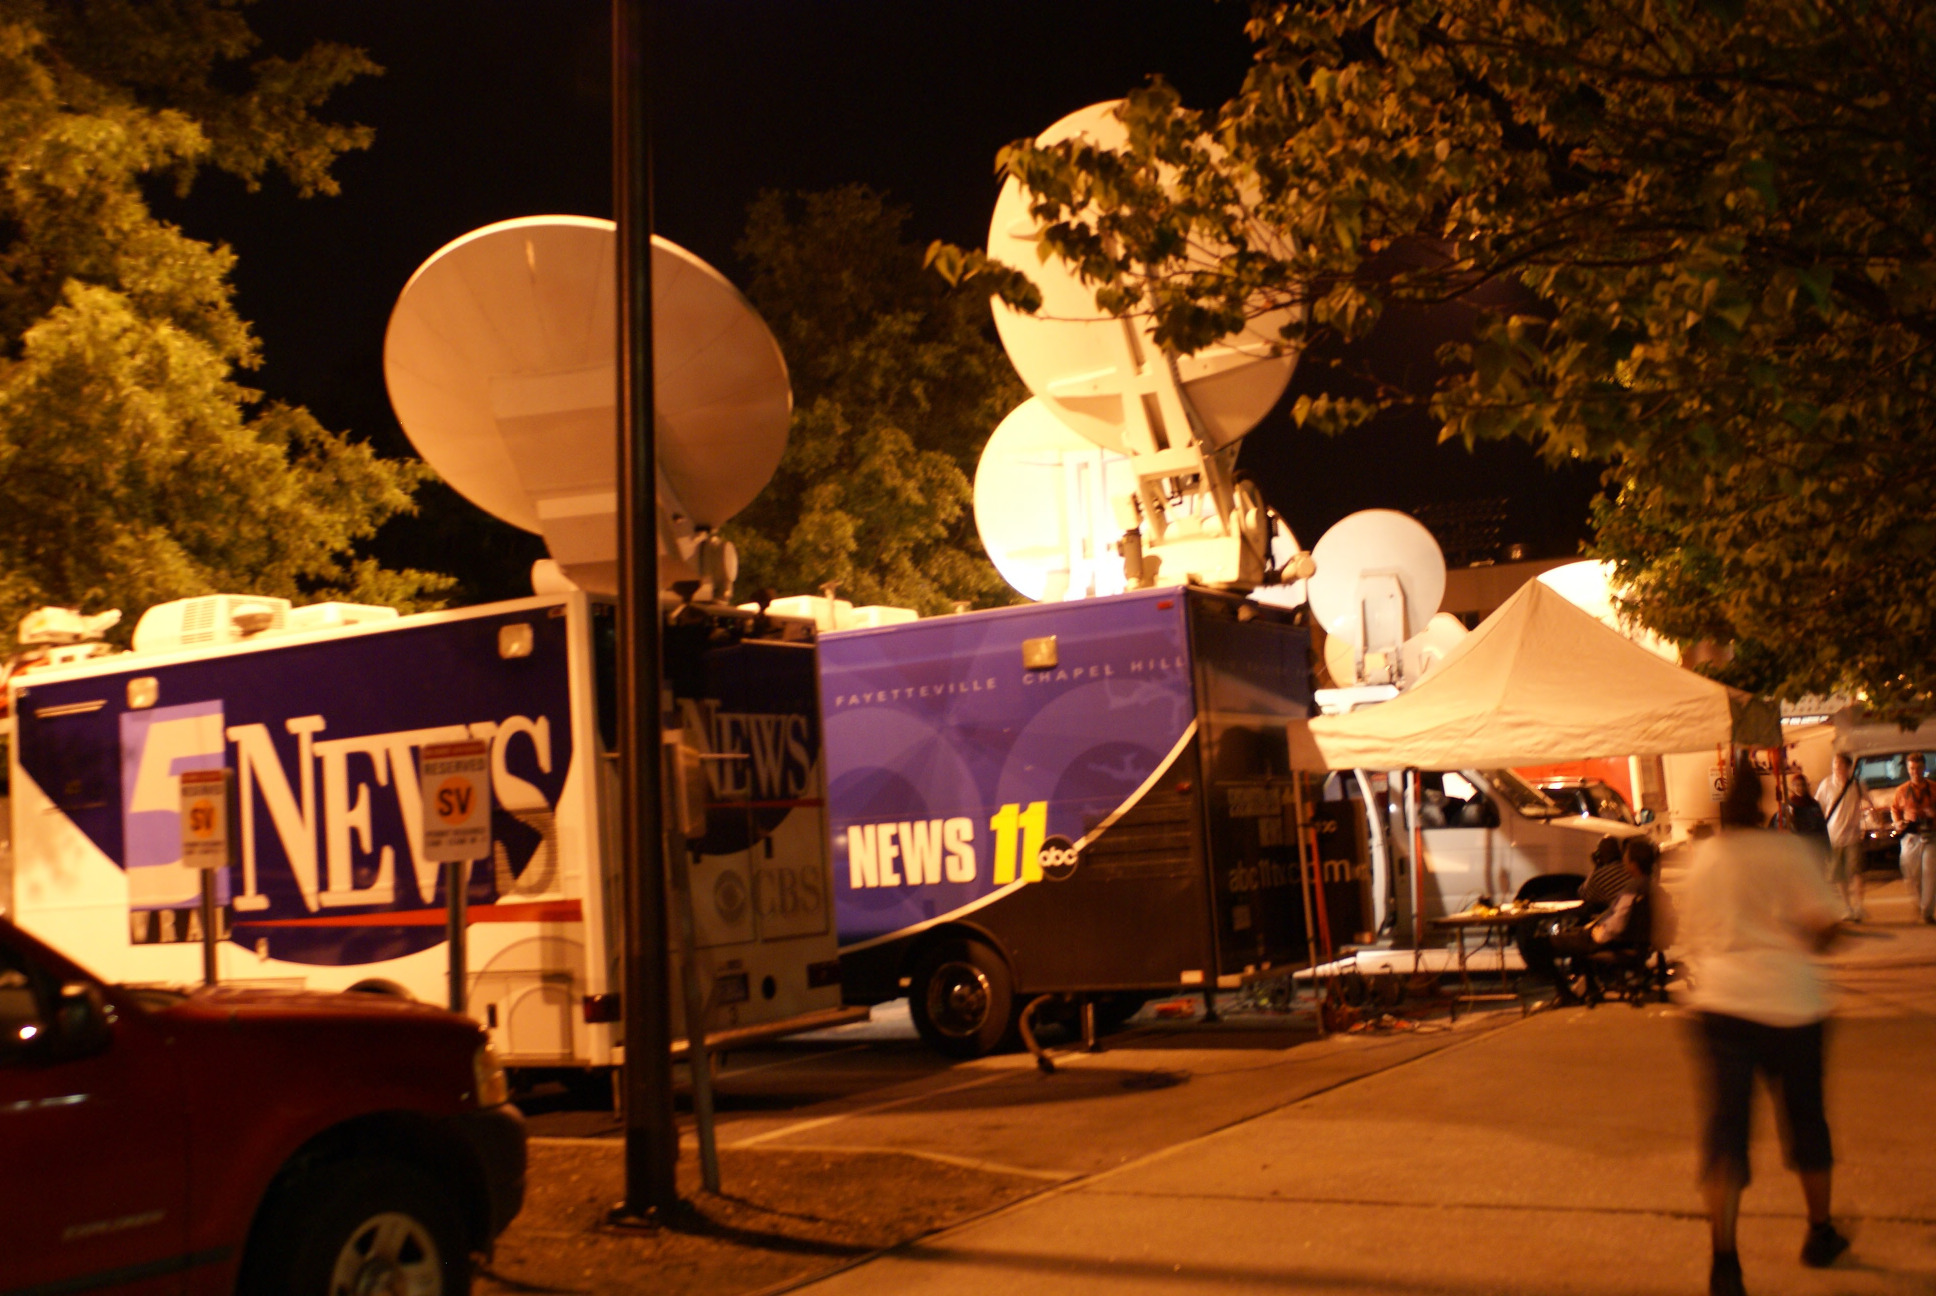 Media trucks outside after the Barack Obama rally